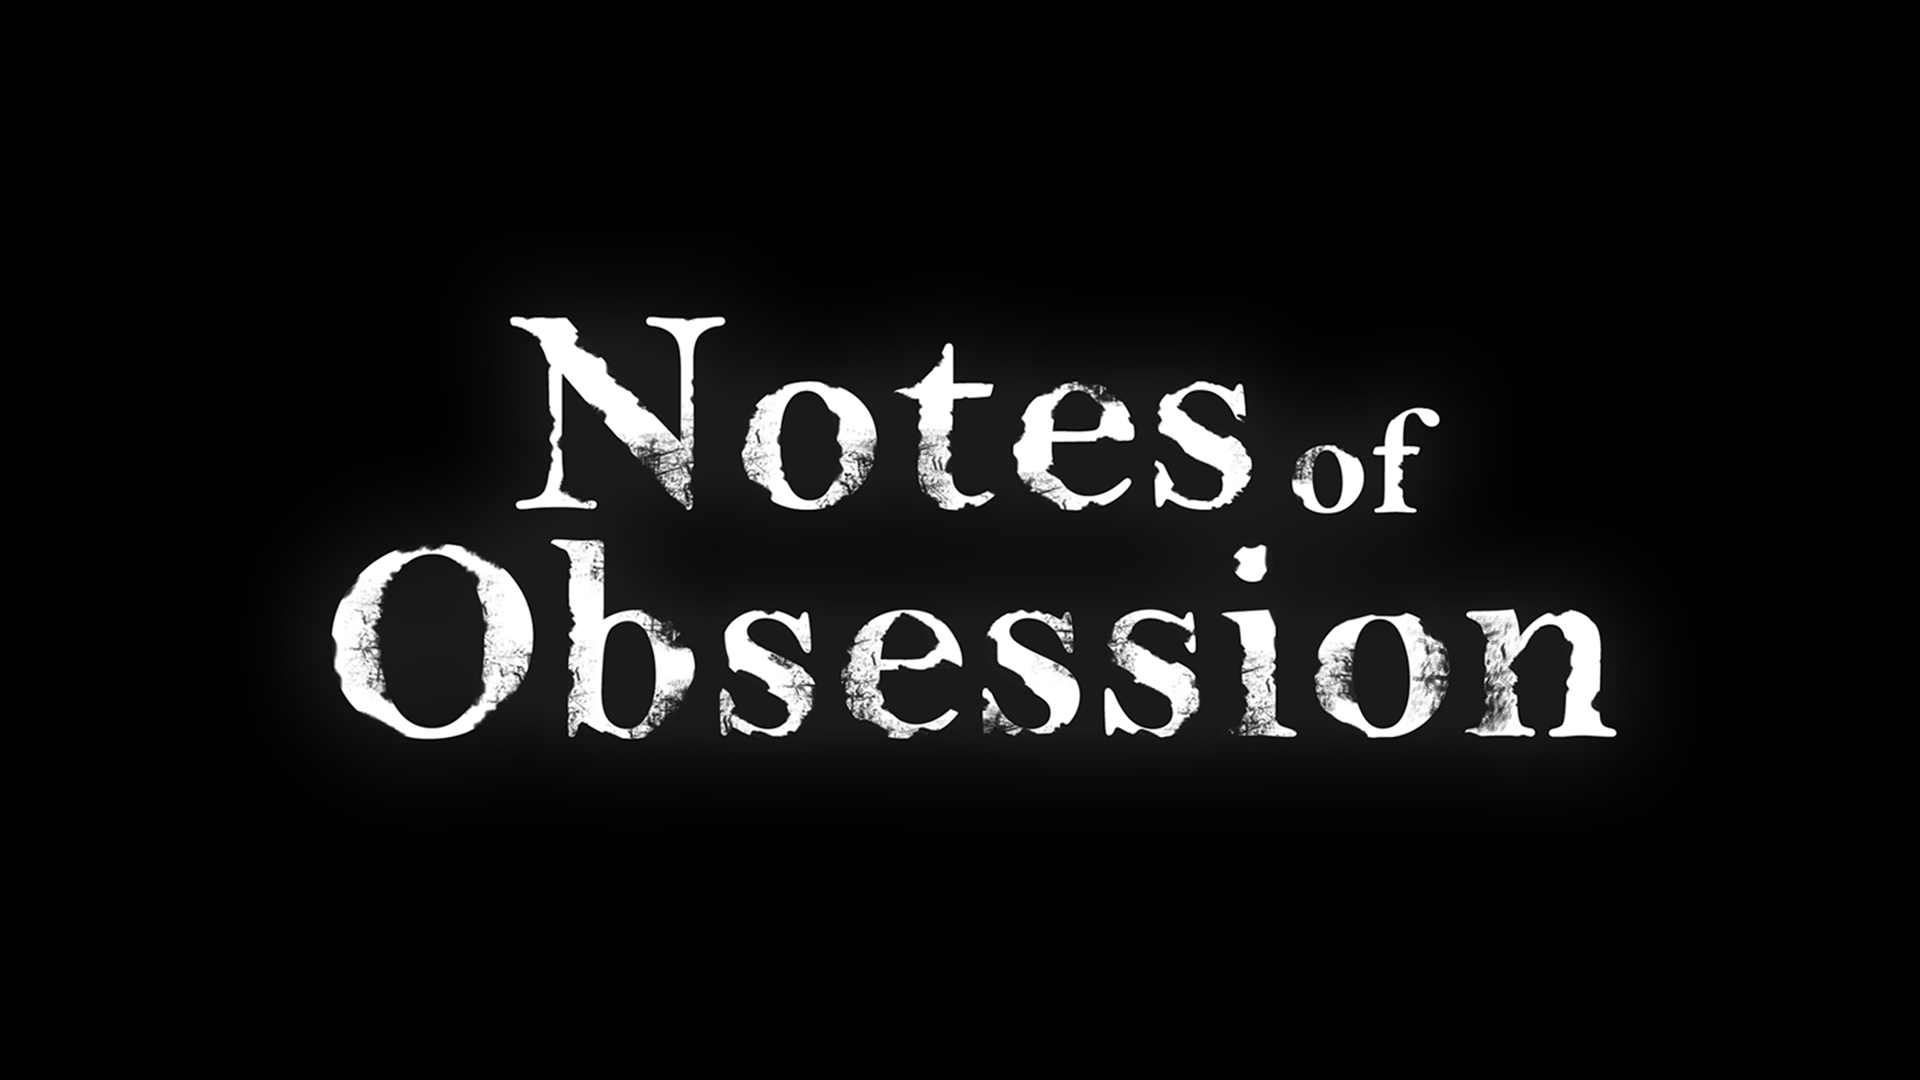 Notes of Obsession by Creaky Stairs